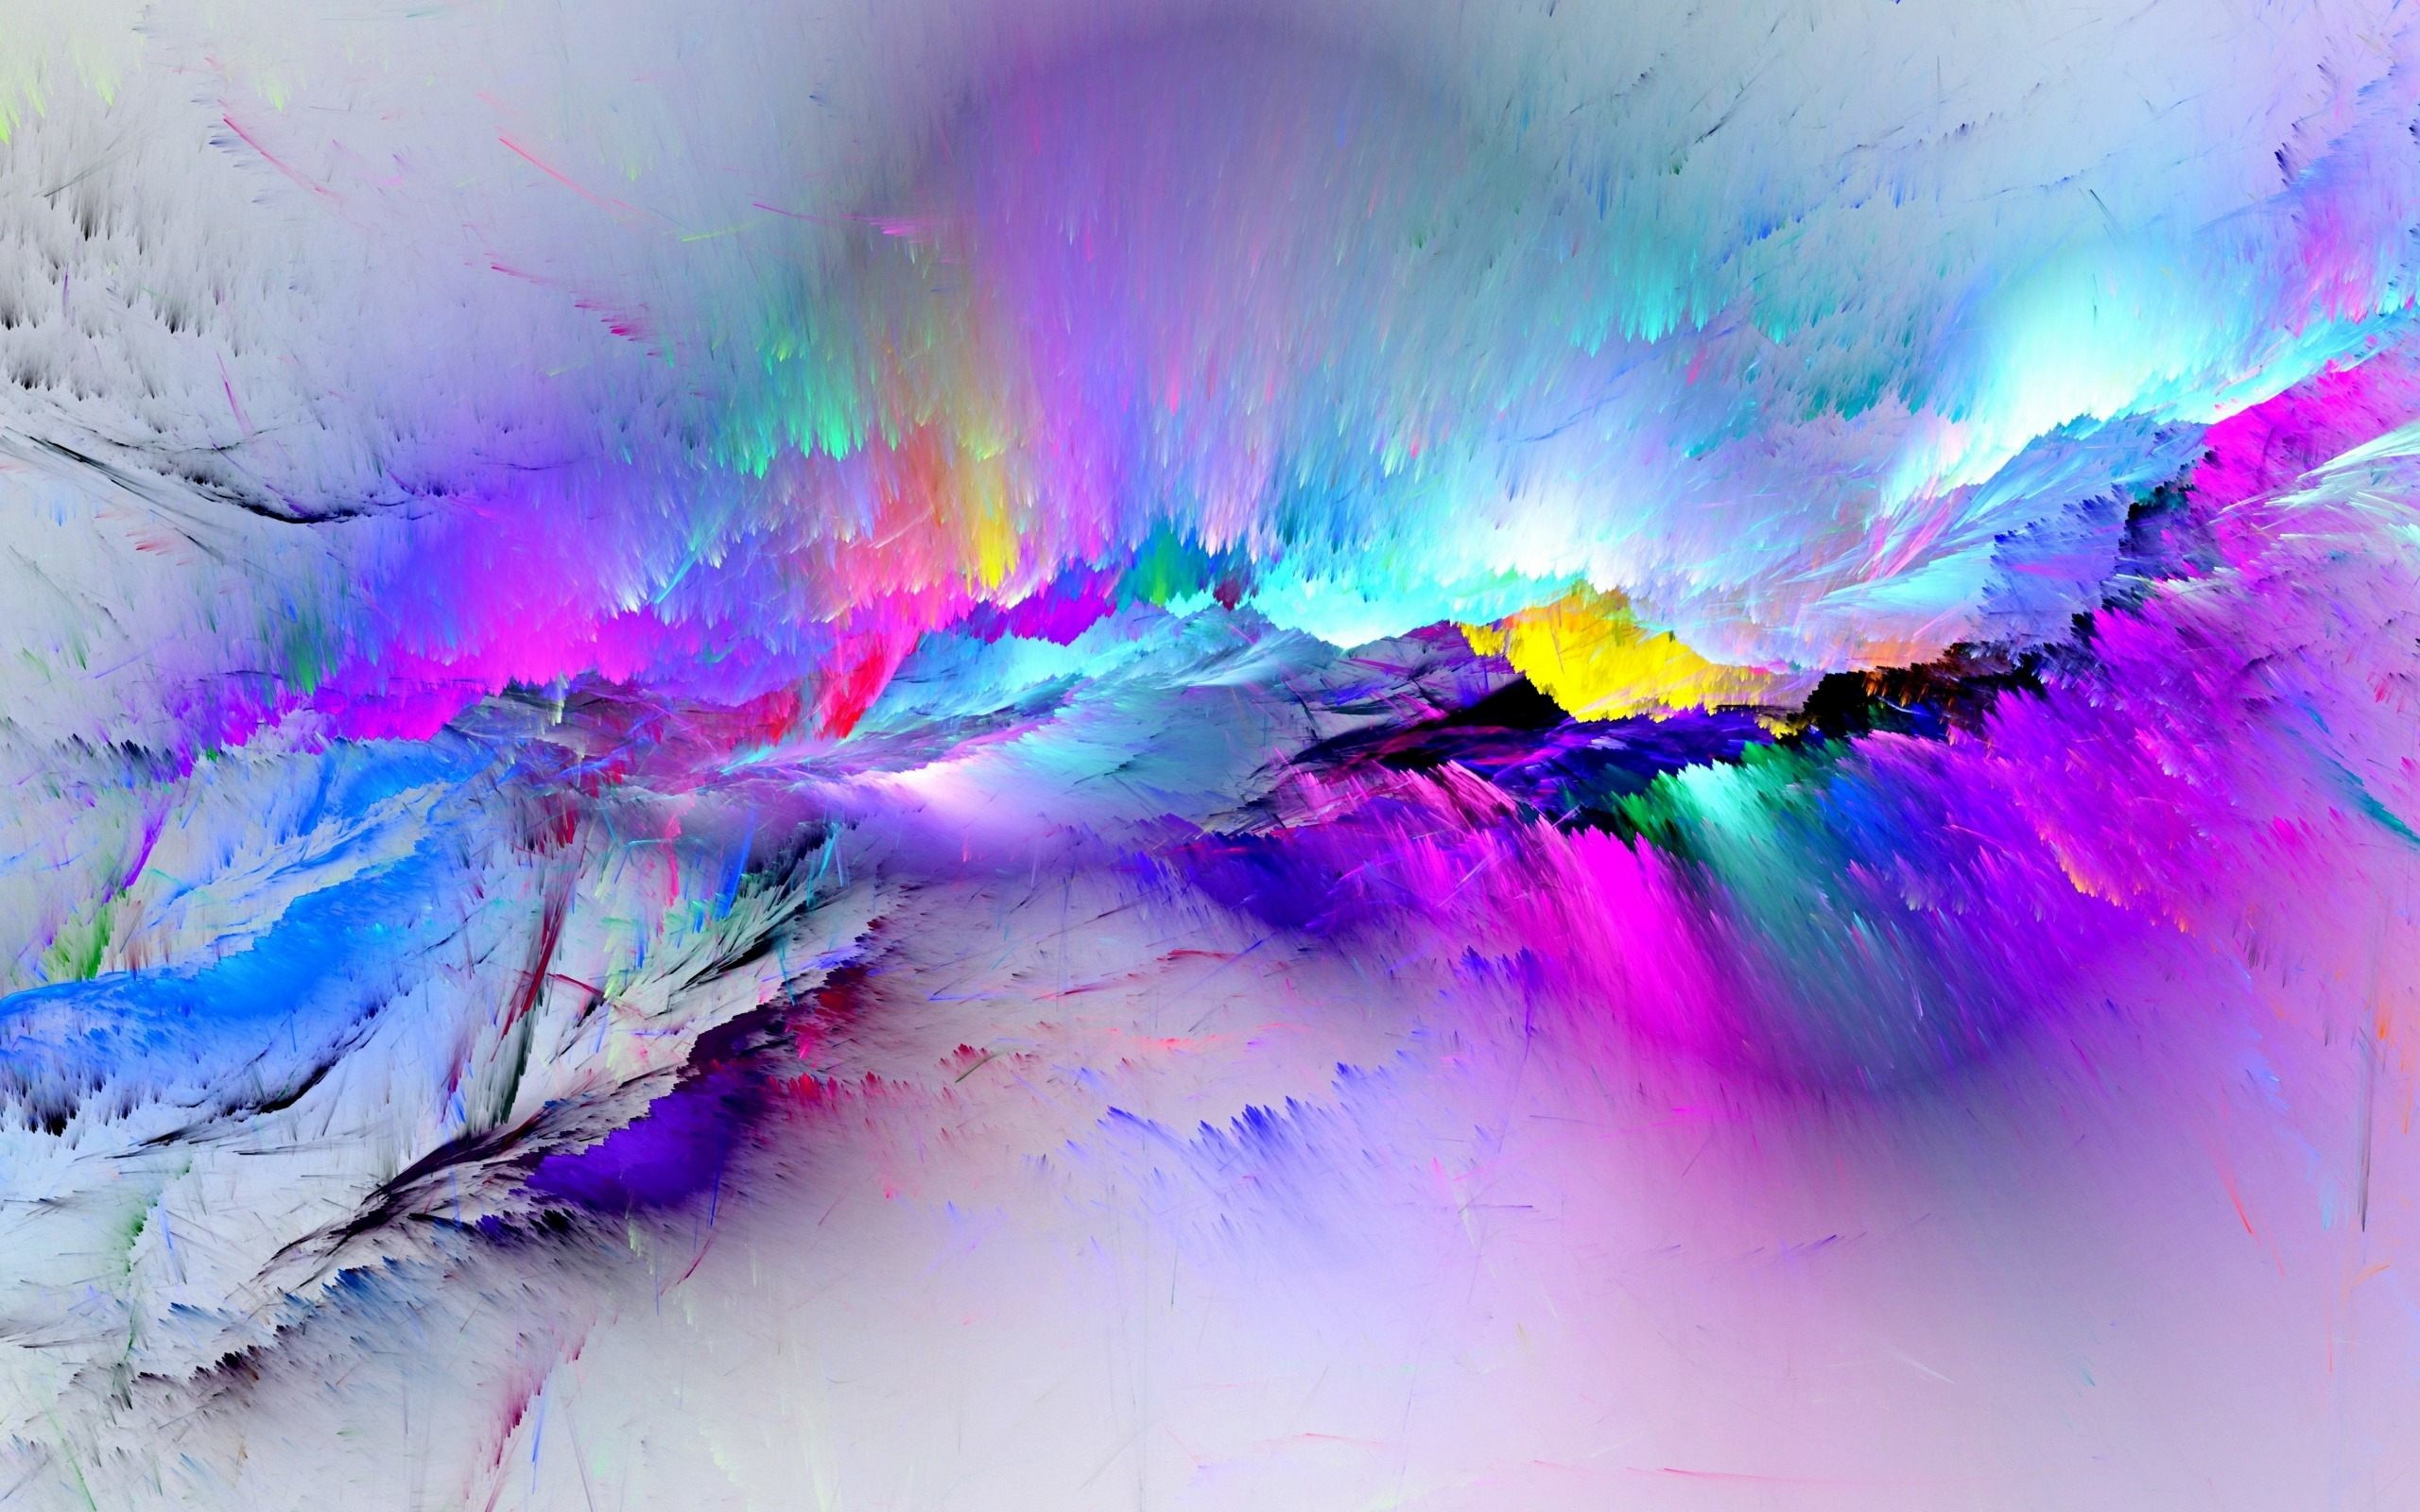 Download Abstract New House Paint Colors Backgrounds Wallpaper … |  backgrounds | Pinterest | House paint colors, Wallpaper and Wallpaper free  download